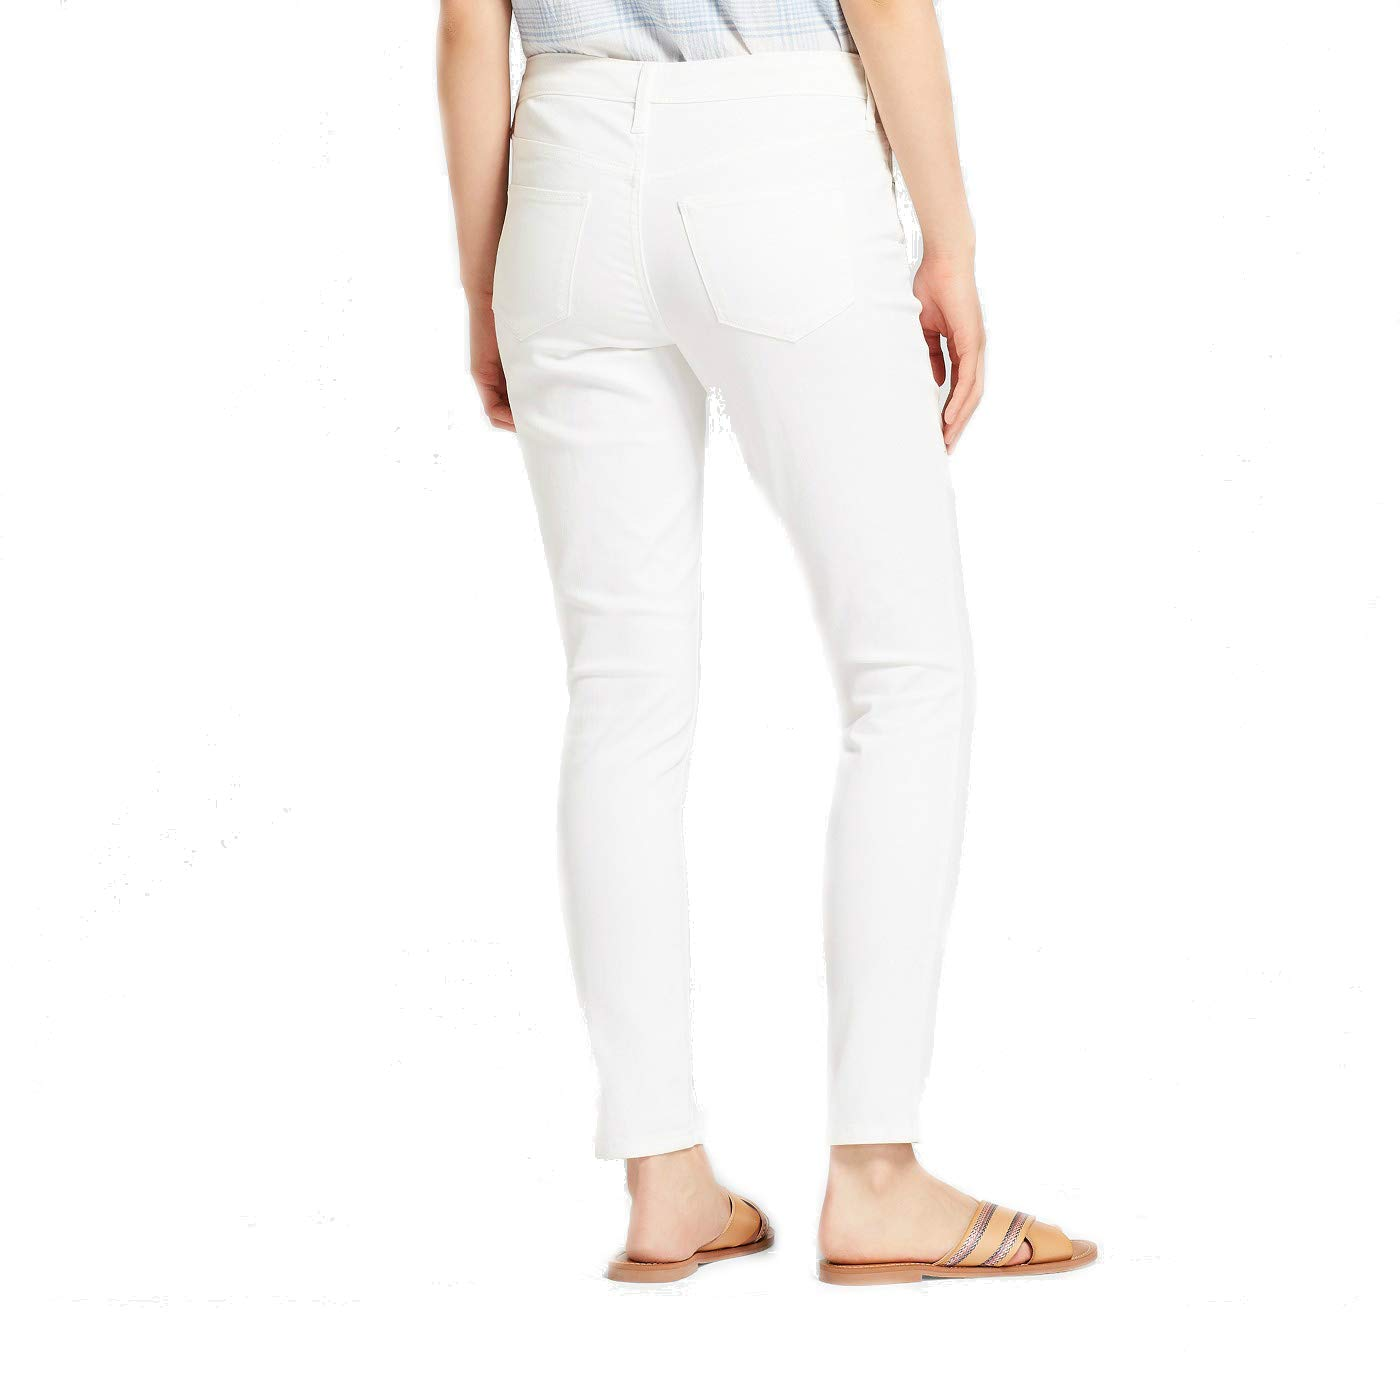 e4c382f68816f4 Universal Thread Women's Mid-Rise Skinny Jeans White at Amazon Women's Jeans  store